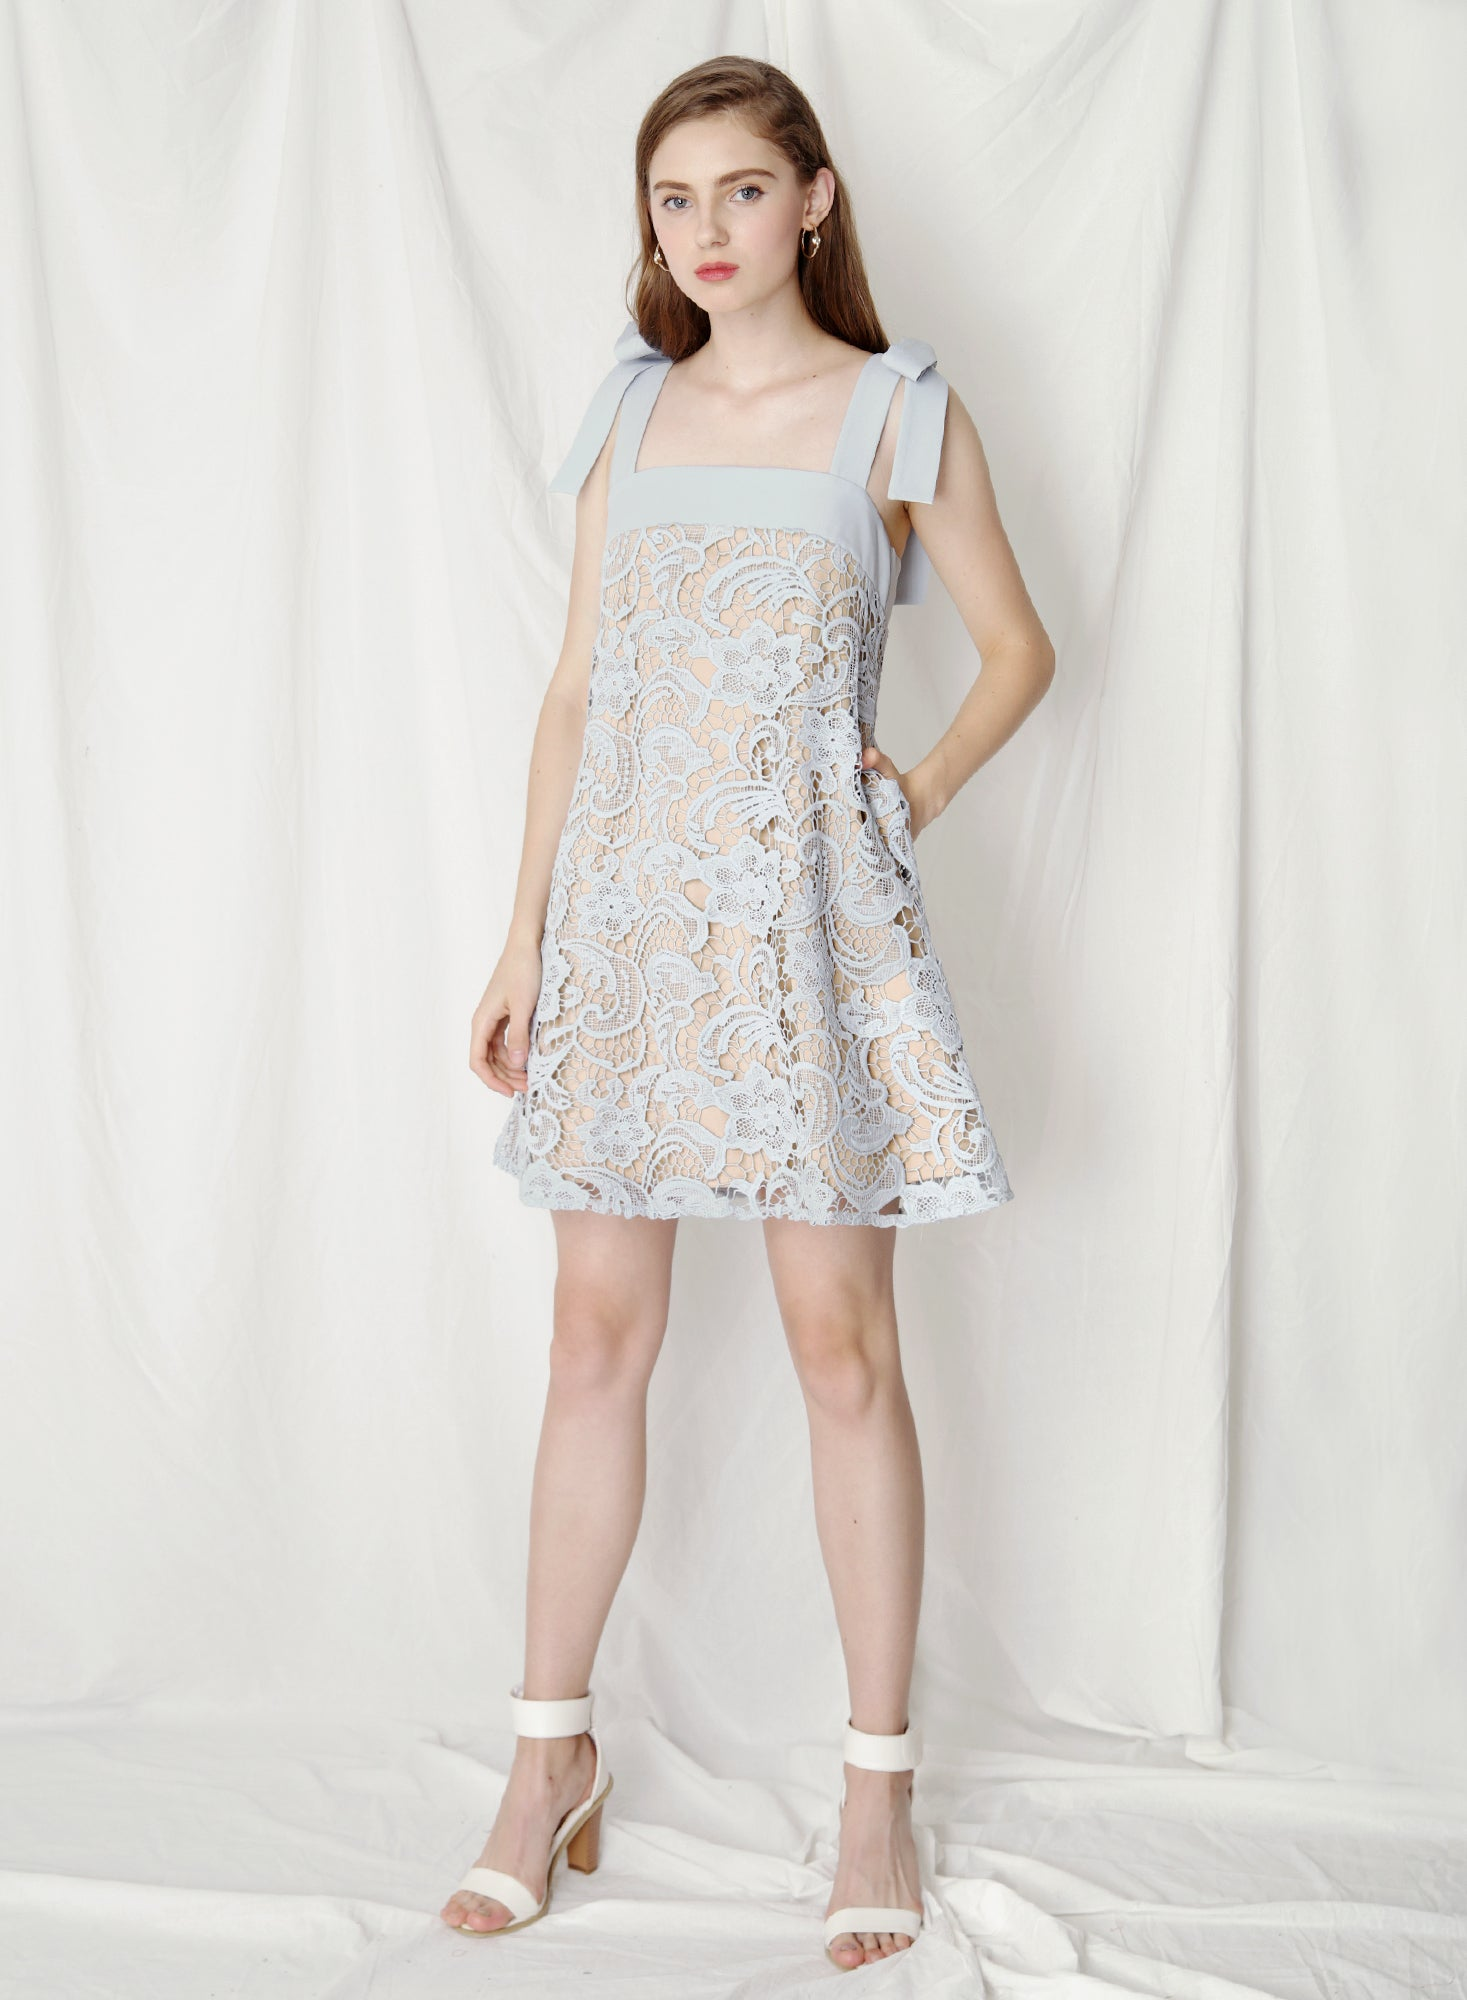 Utopia Ribbon Tie Flare Dress (Dusk Blue) at $41.50 only sold at And Well Dressed Online Fashion Store Singapore